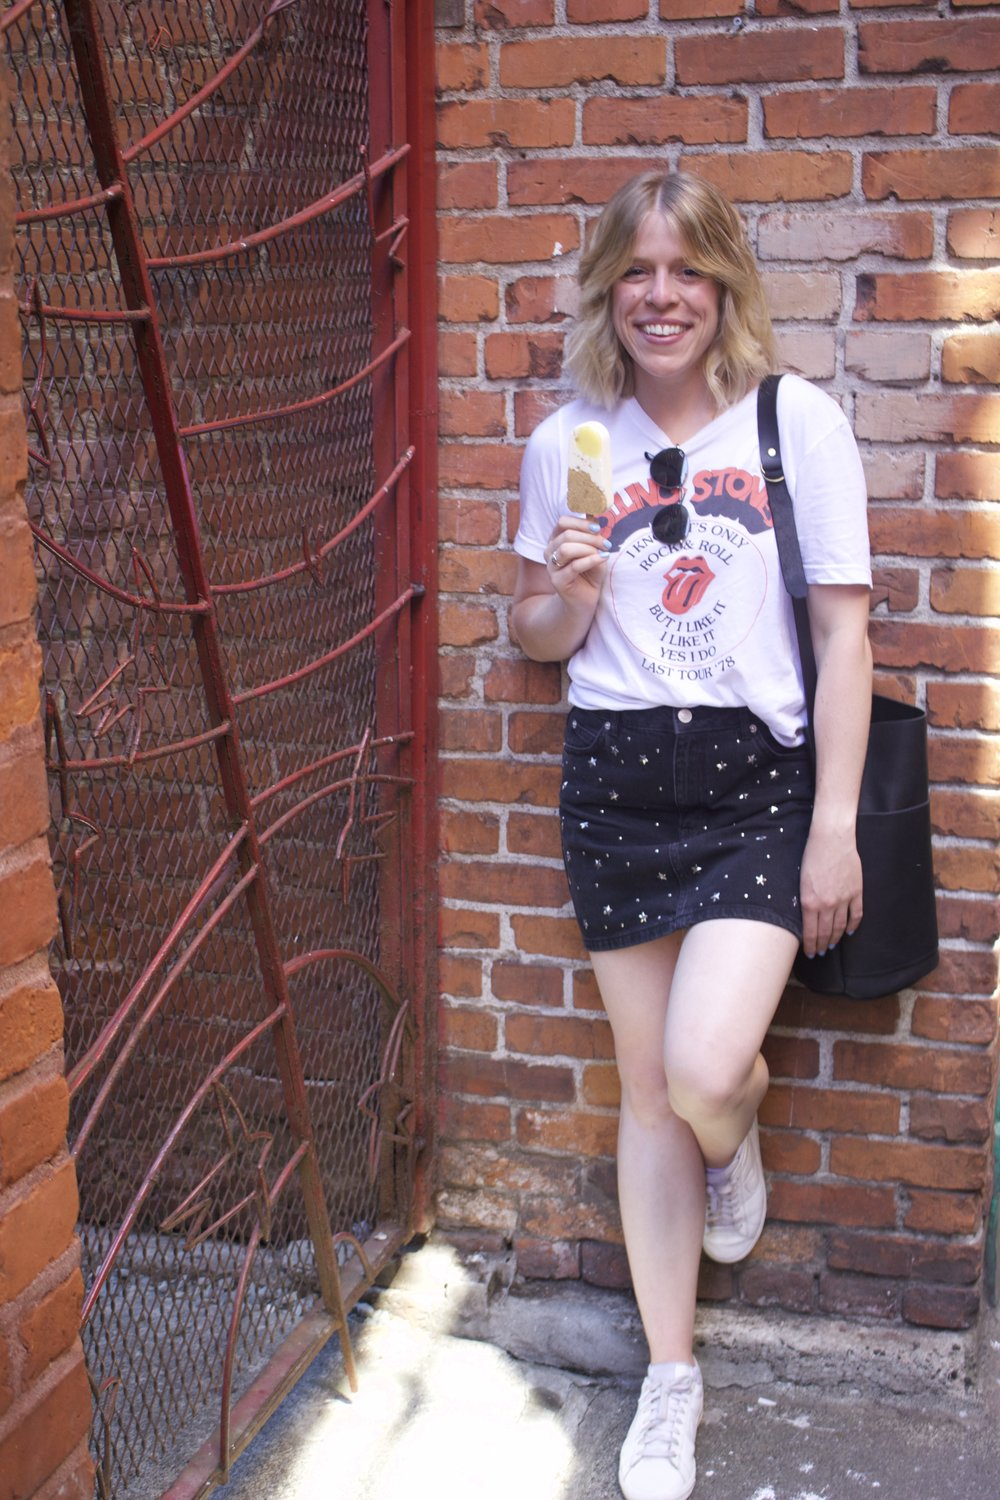 American Eagle    Rolling Stones T-Shirt,    Topshop    Skirt,    Nike    Sneakers,    Market Canvas Leather    Bucket Bag,    Ray Ban    Sunglasses